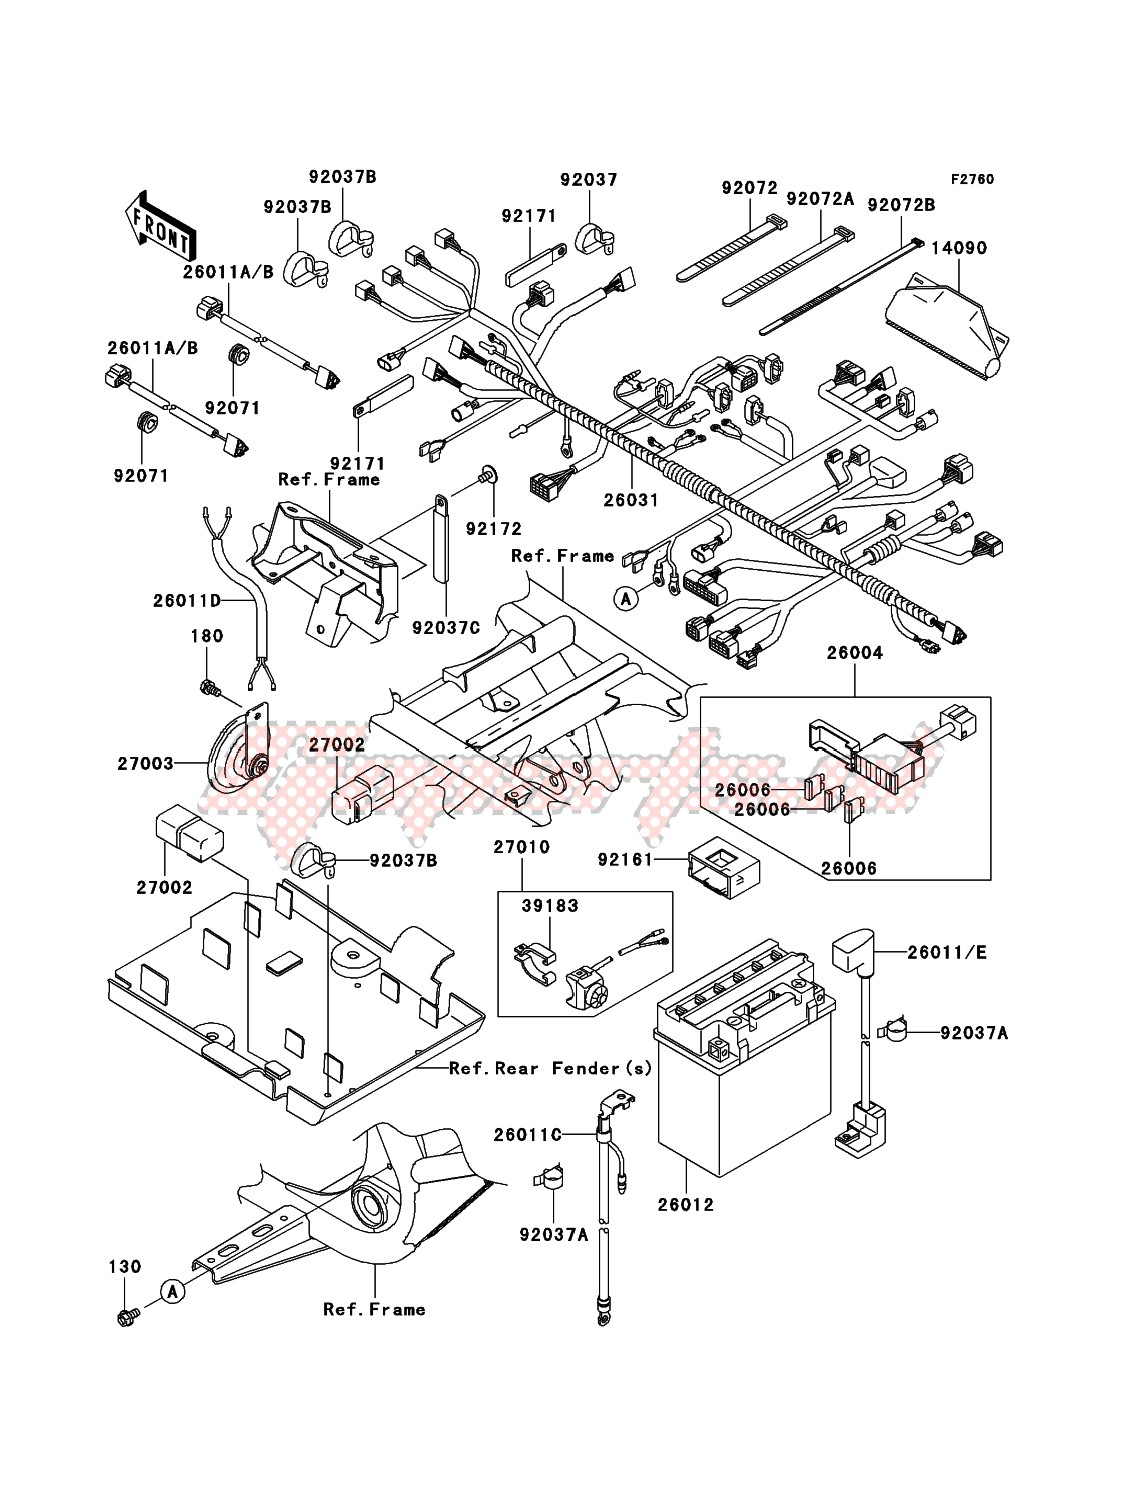 Frame-Chassis Electrical Equipment